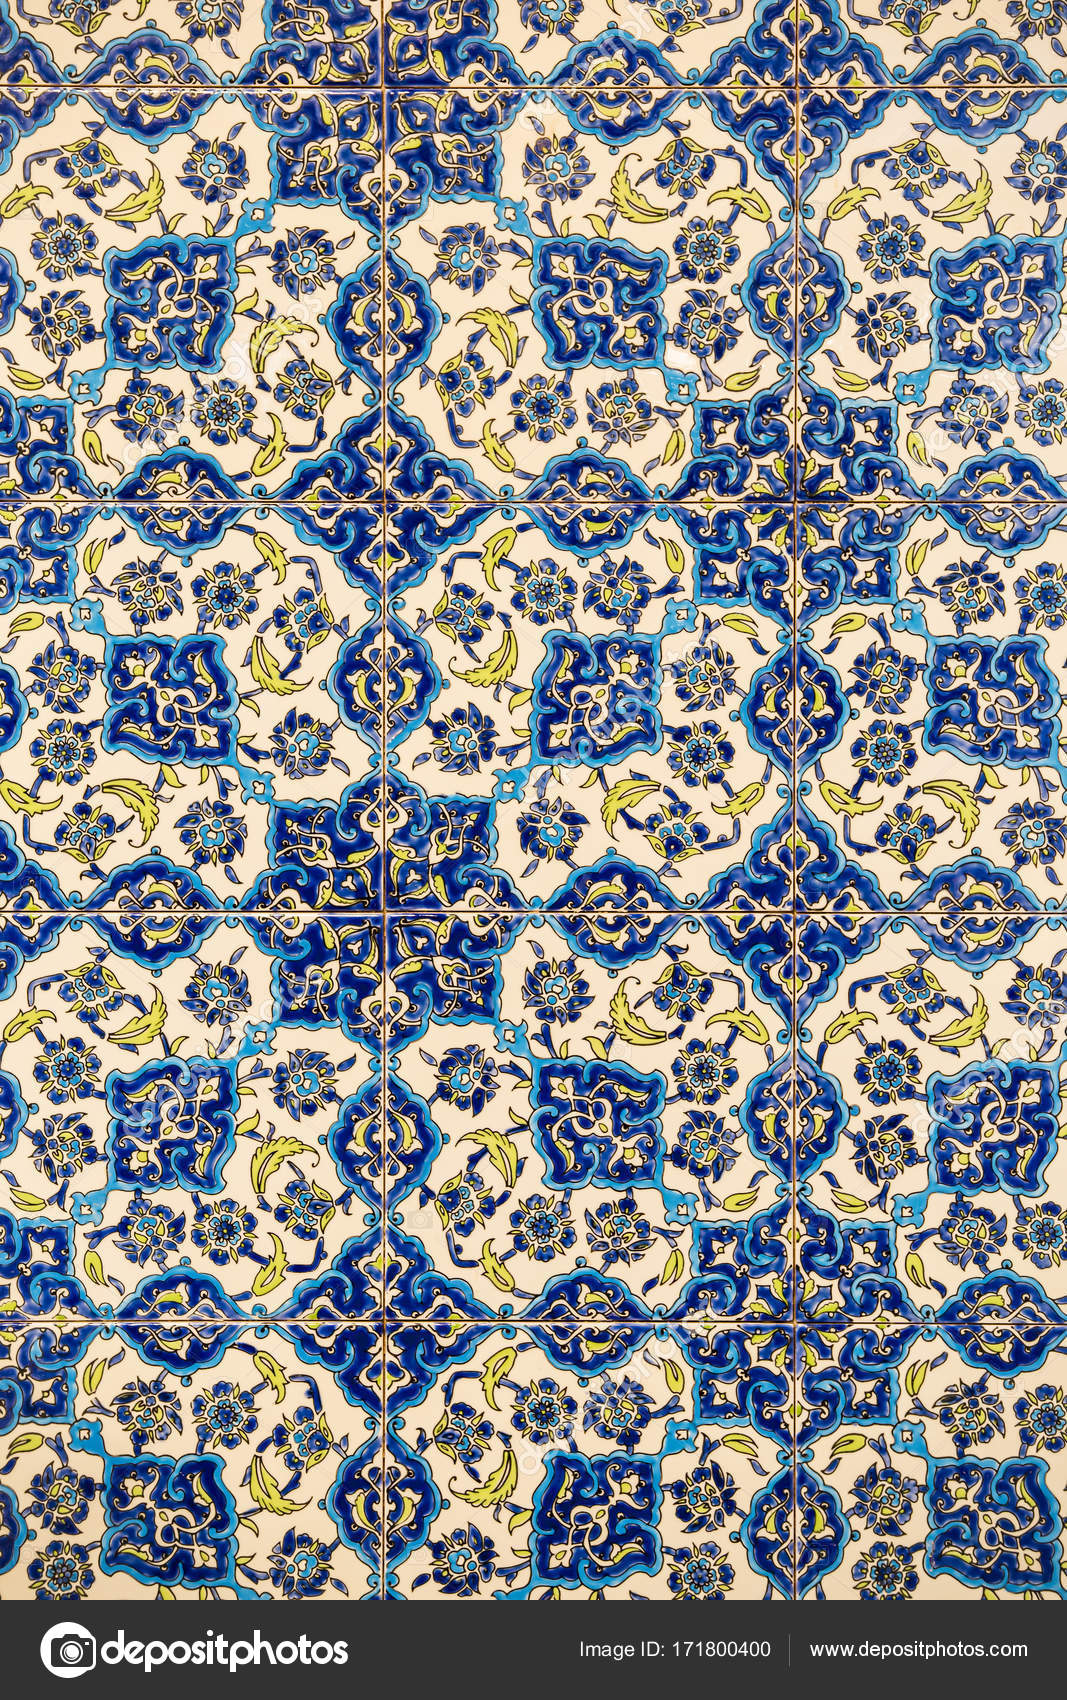 flower patterns on ceramic tiles in the old Turkish style, detail of ...